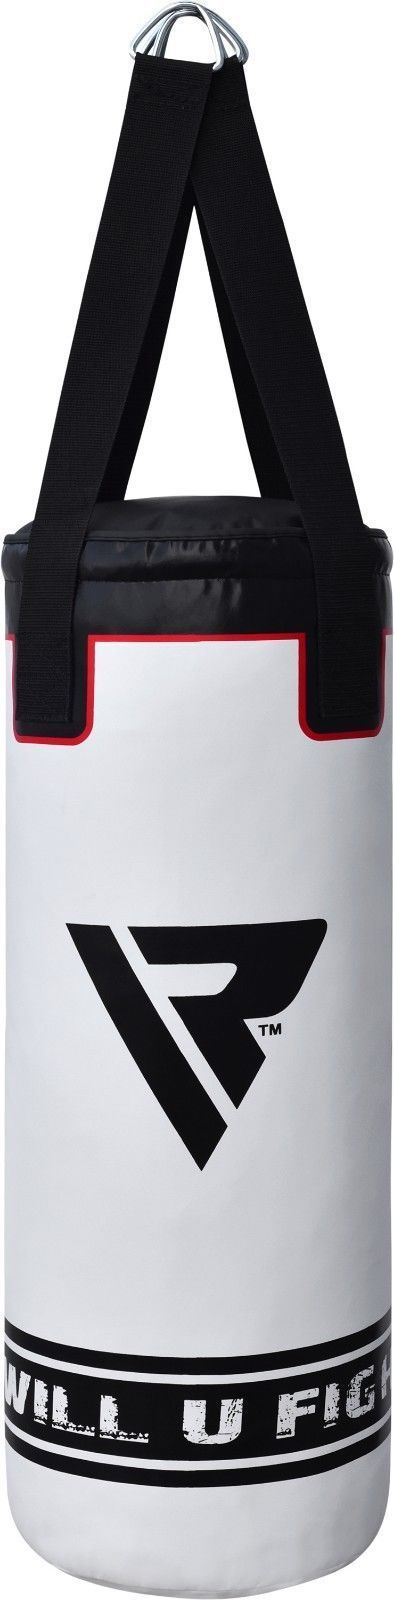 b2fitness rdx 25 lb punching bag kids cardio strike standing boxing